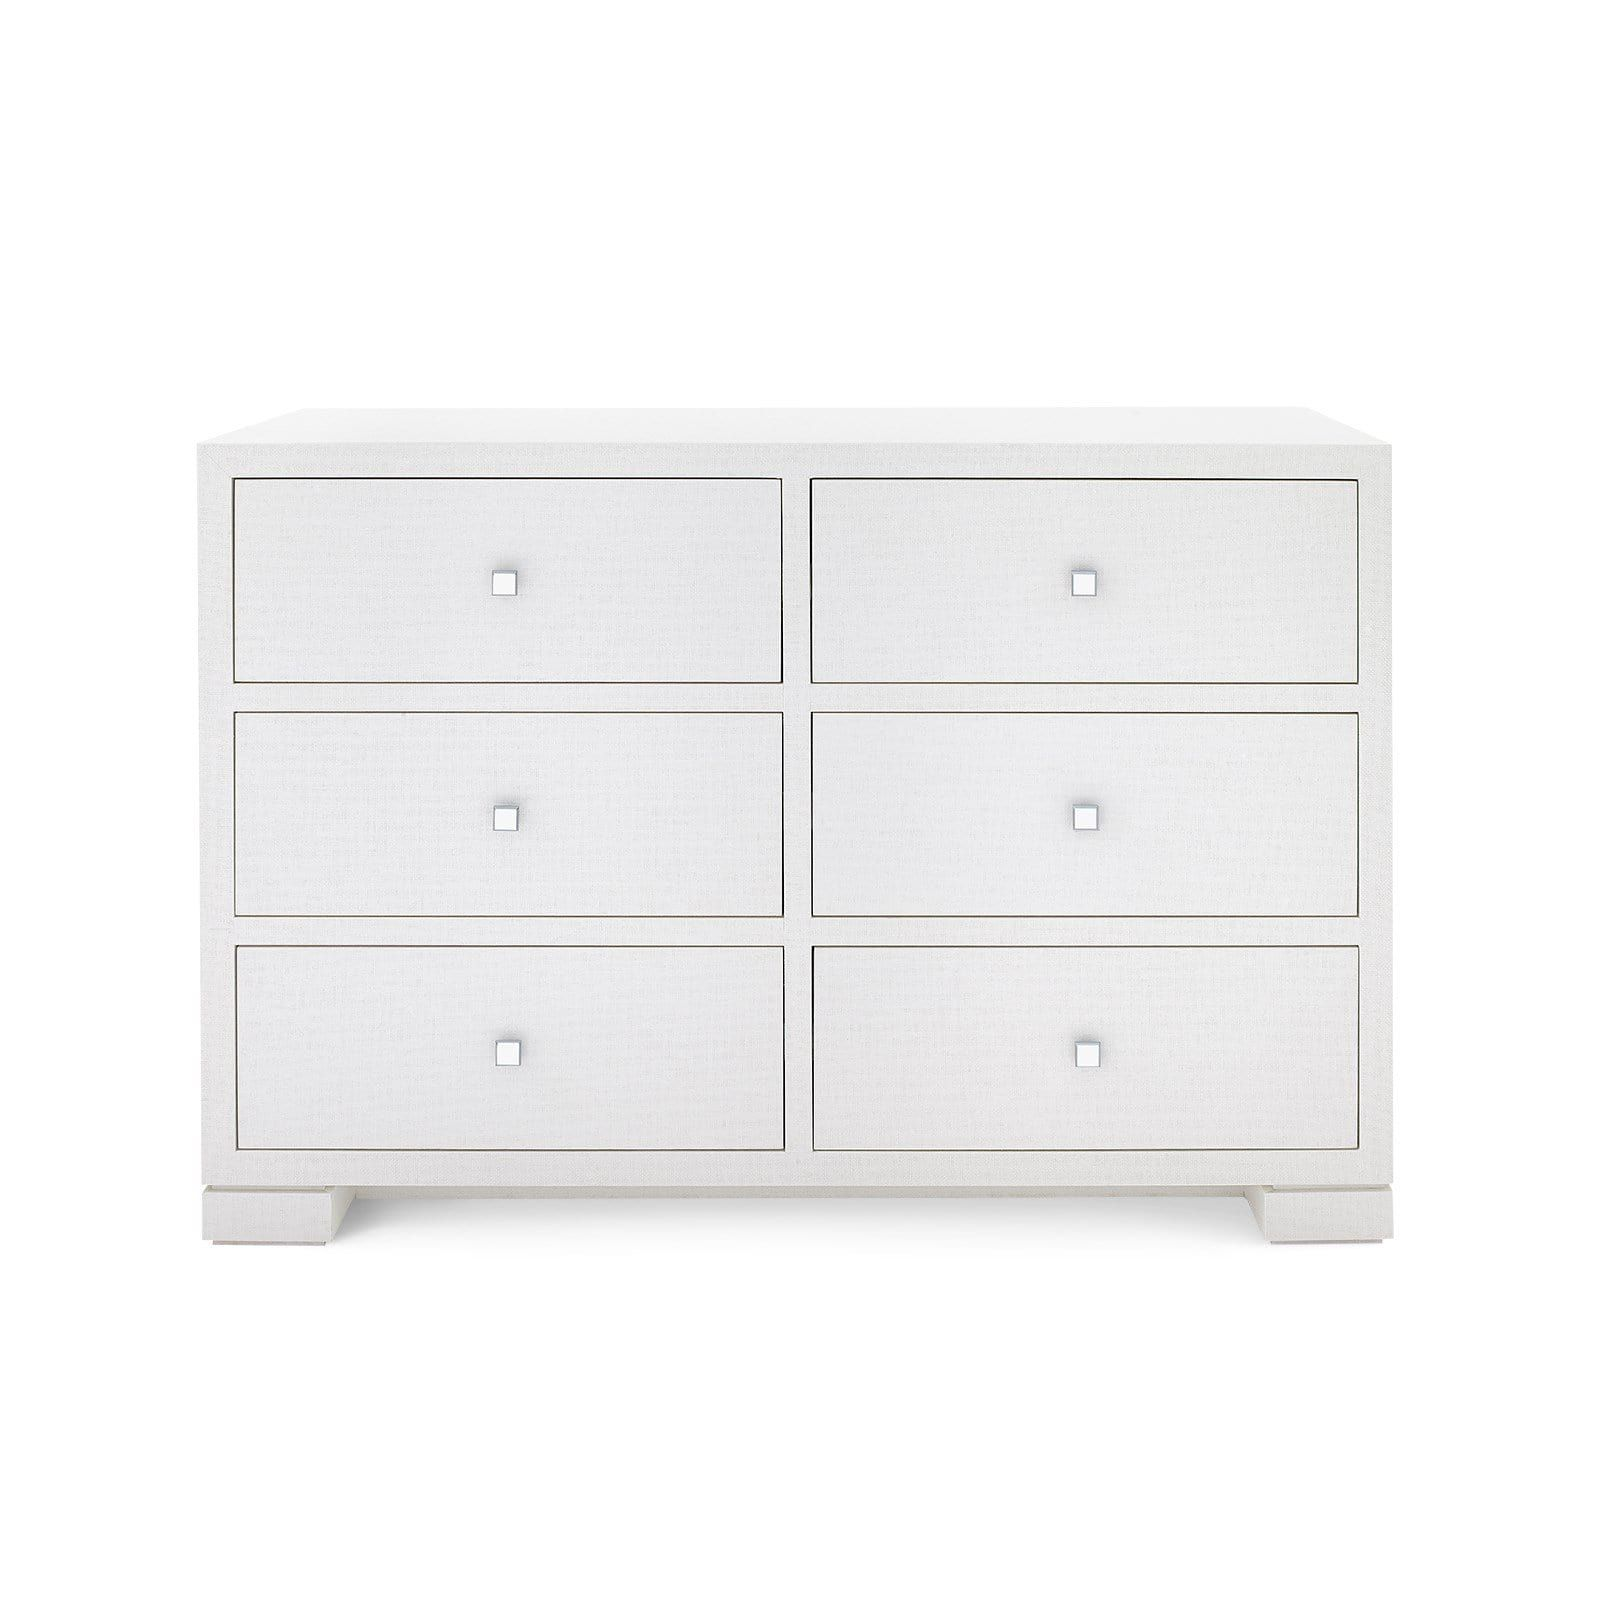 Bungalow 5 Frances Large 6 Drawer Dresser White In 2021 White Lacquer Dresser Large Cabinet Grasscloth [ 1600 x 1600 Pixel ]